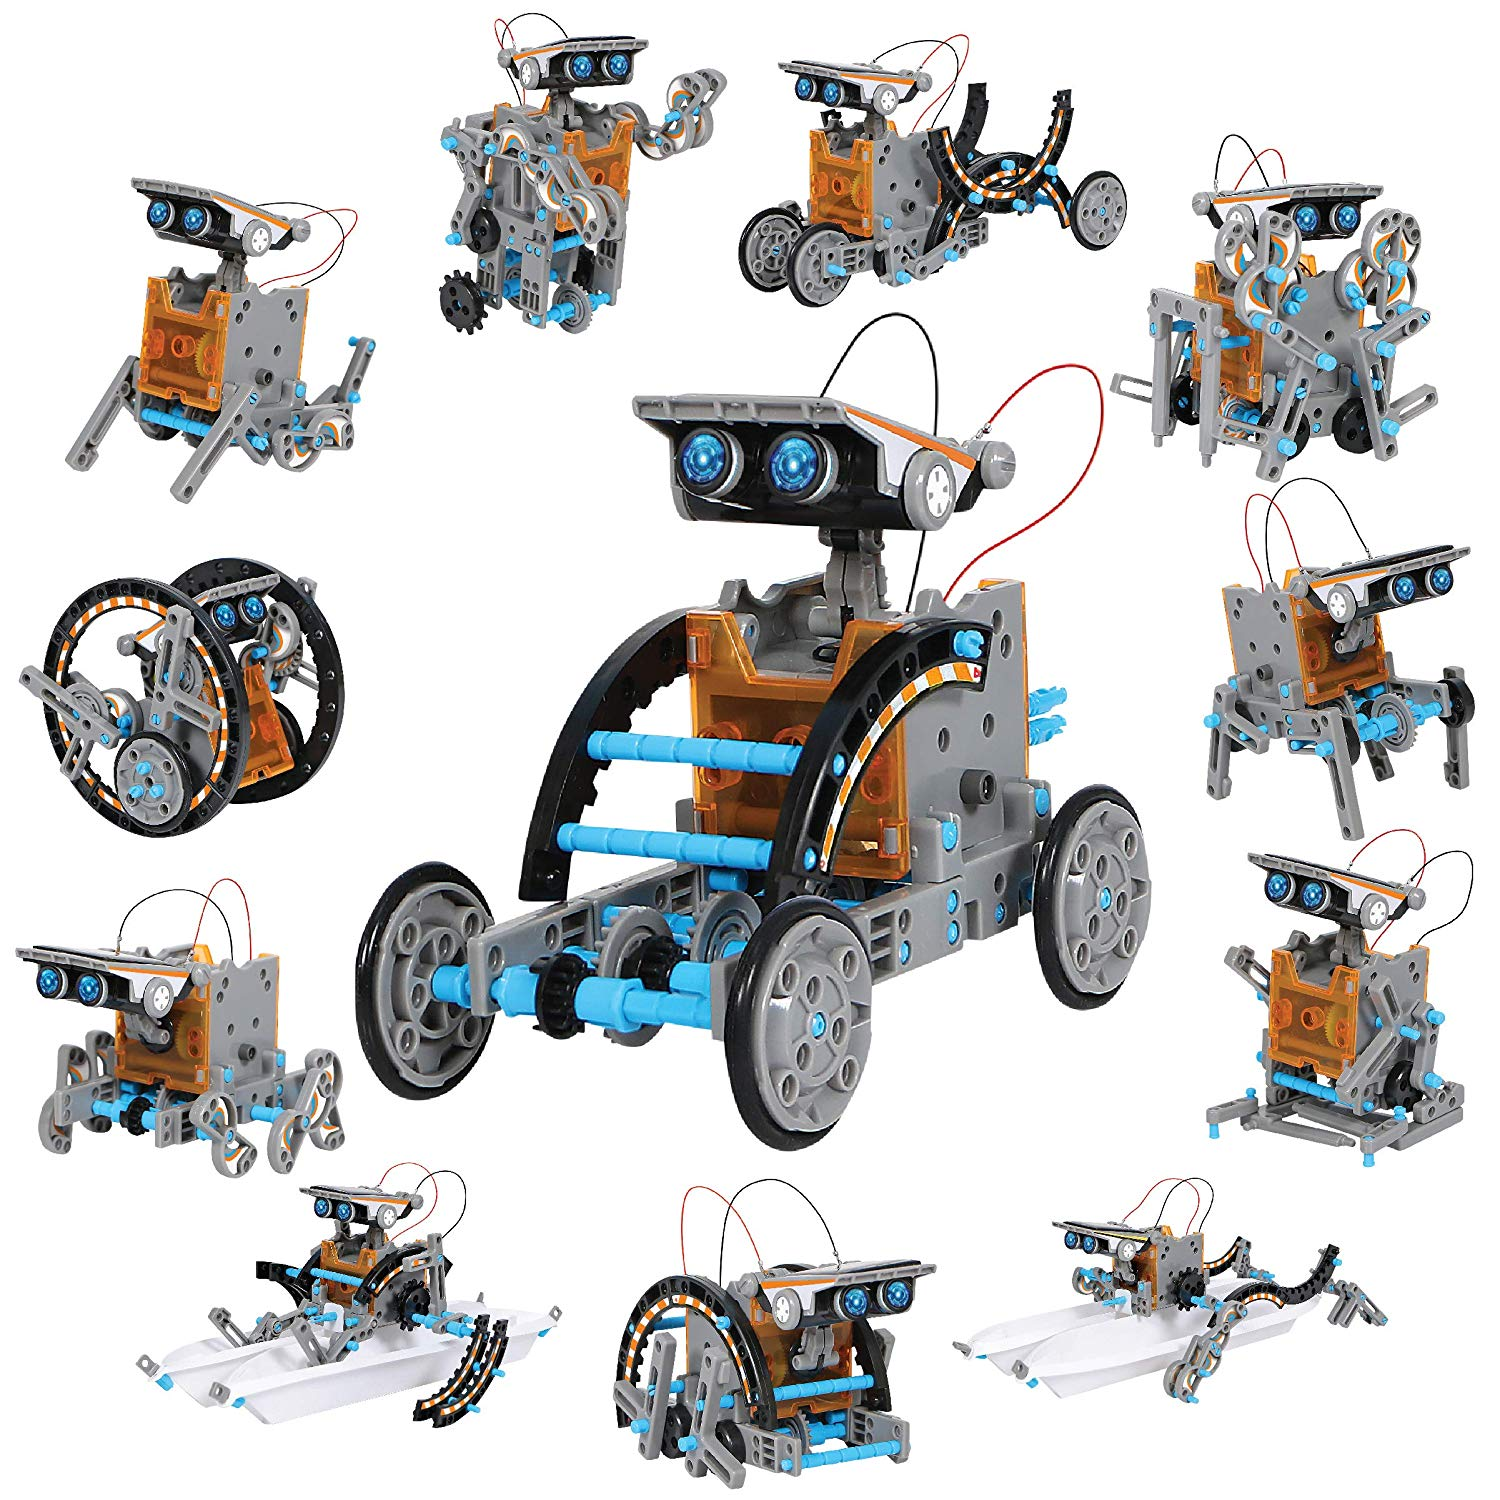 Motorized clipart electrical engineering.